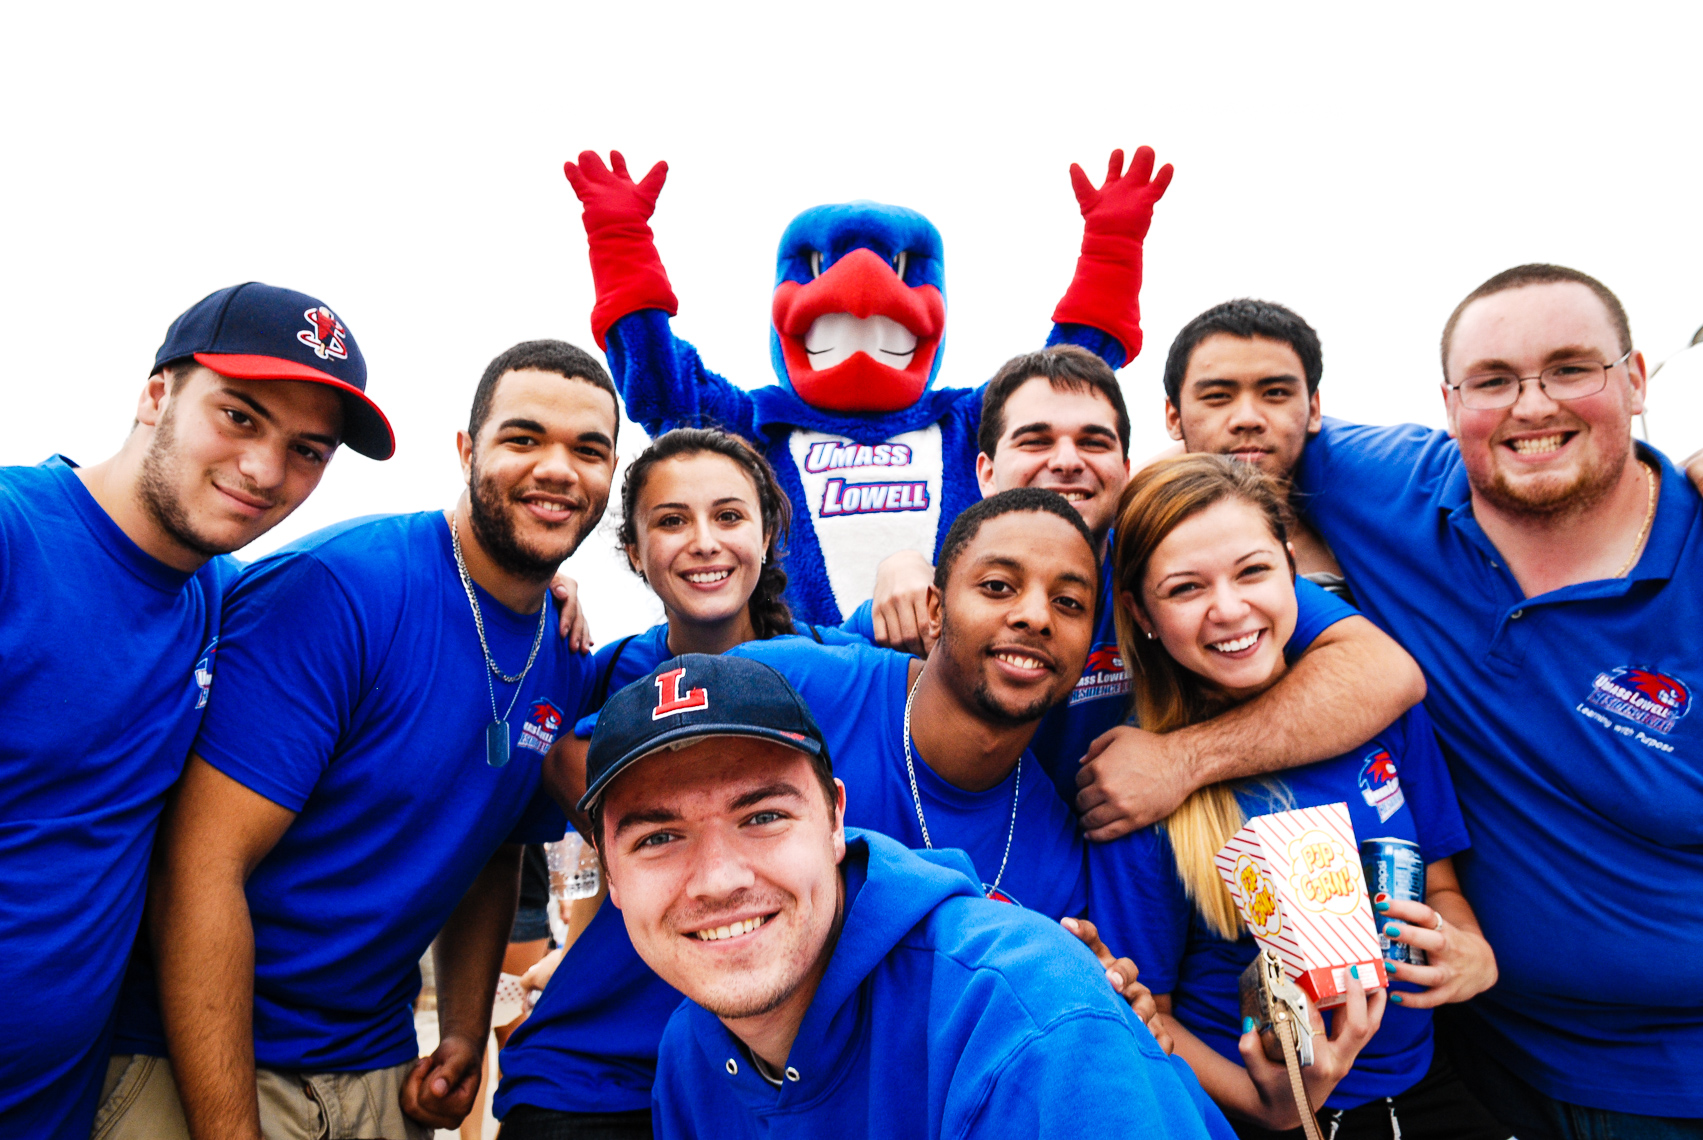 Admissions Marketing Photos | UMass Lowell